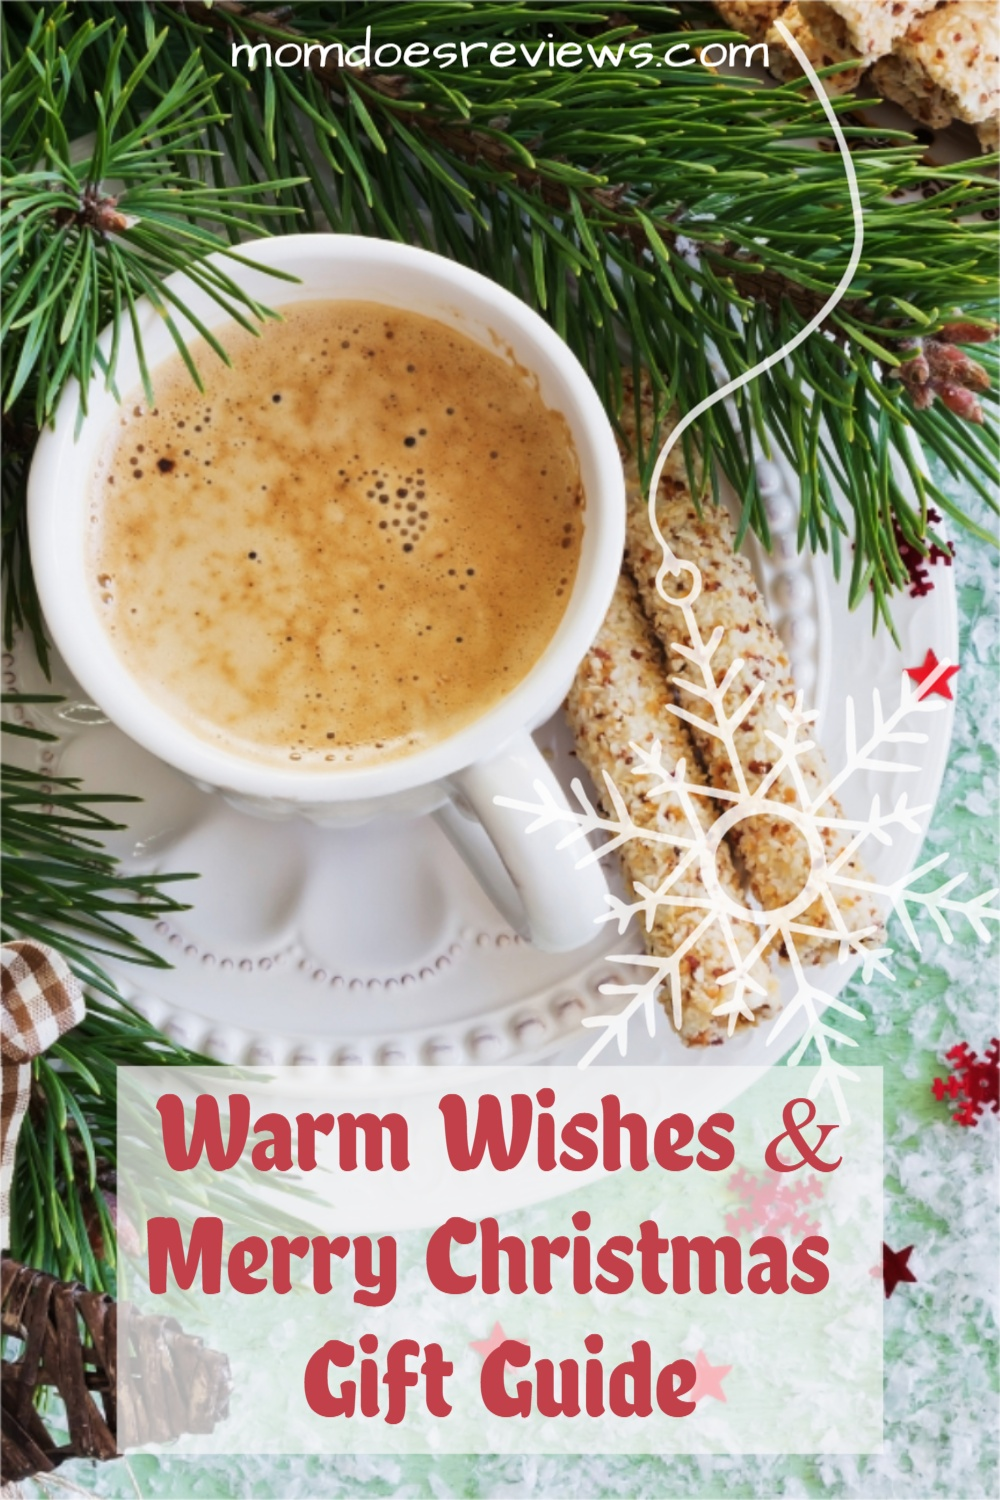 Warm Wishes & Merry Christmas Gift Guide #MegaChristmas21 #giftideas #merrychristmas #giftguide